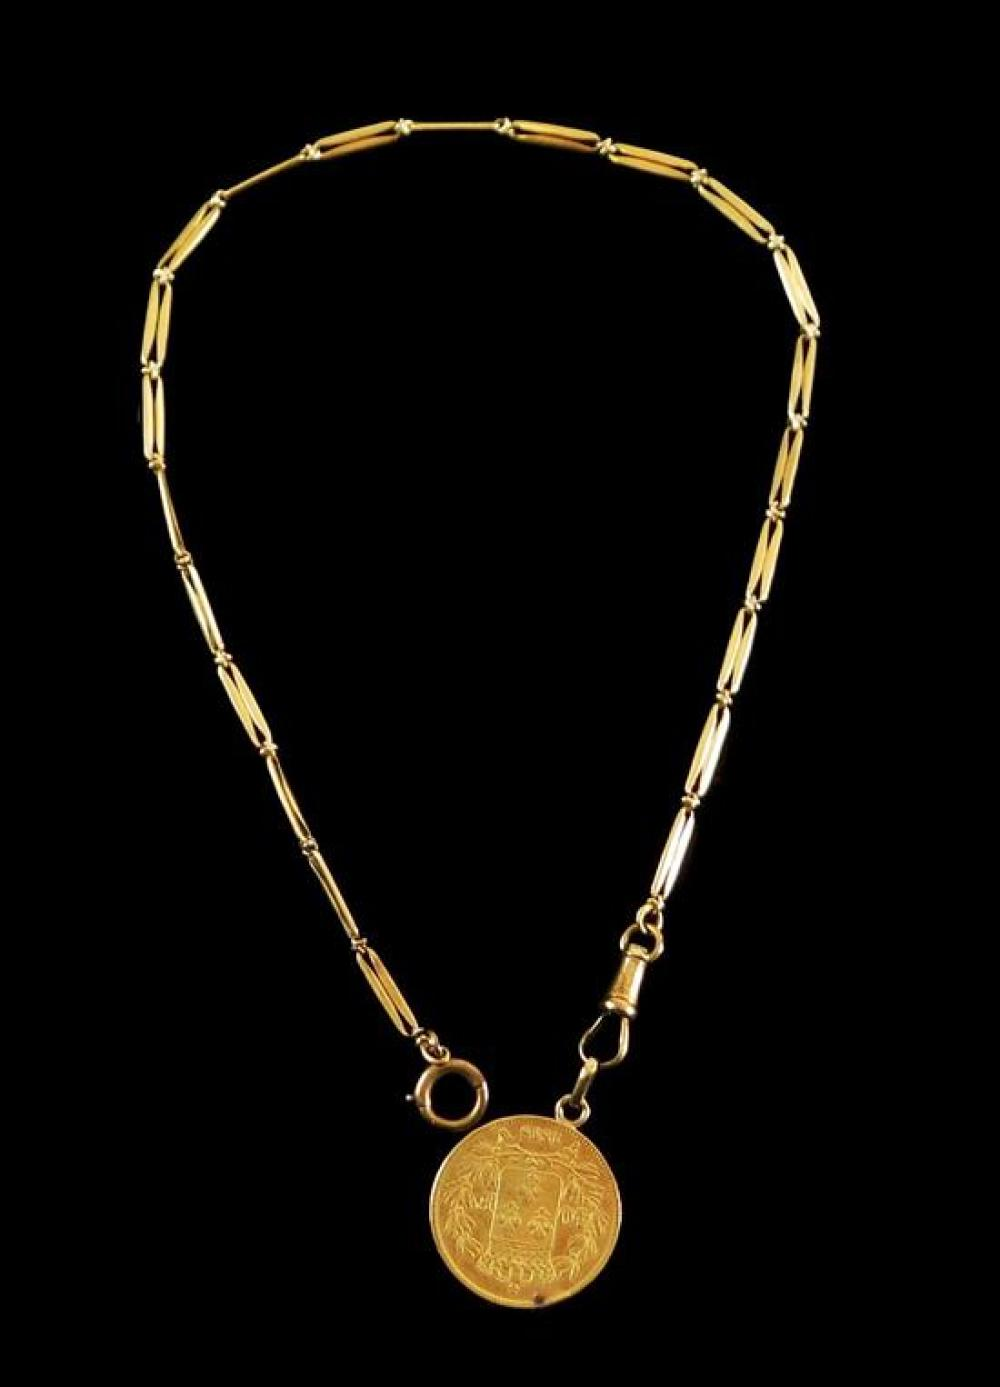 JEWELRY: 14K watch chain with gold 40 Francs French coin, chain: long bar link with spring ring and swivel clasps, tested 14K yellow...